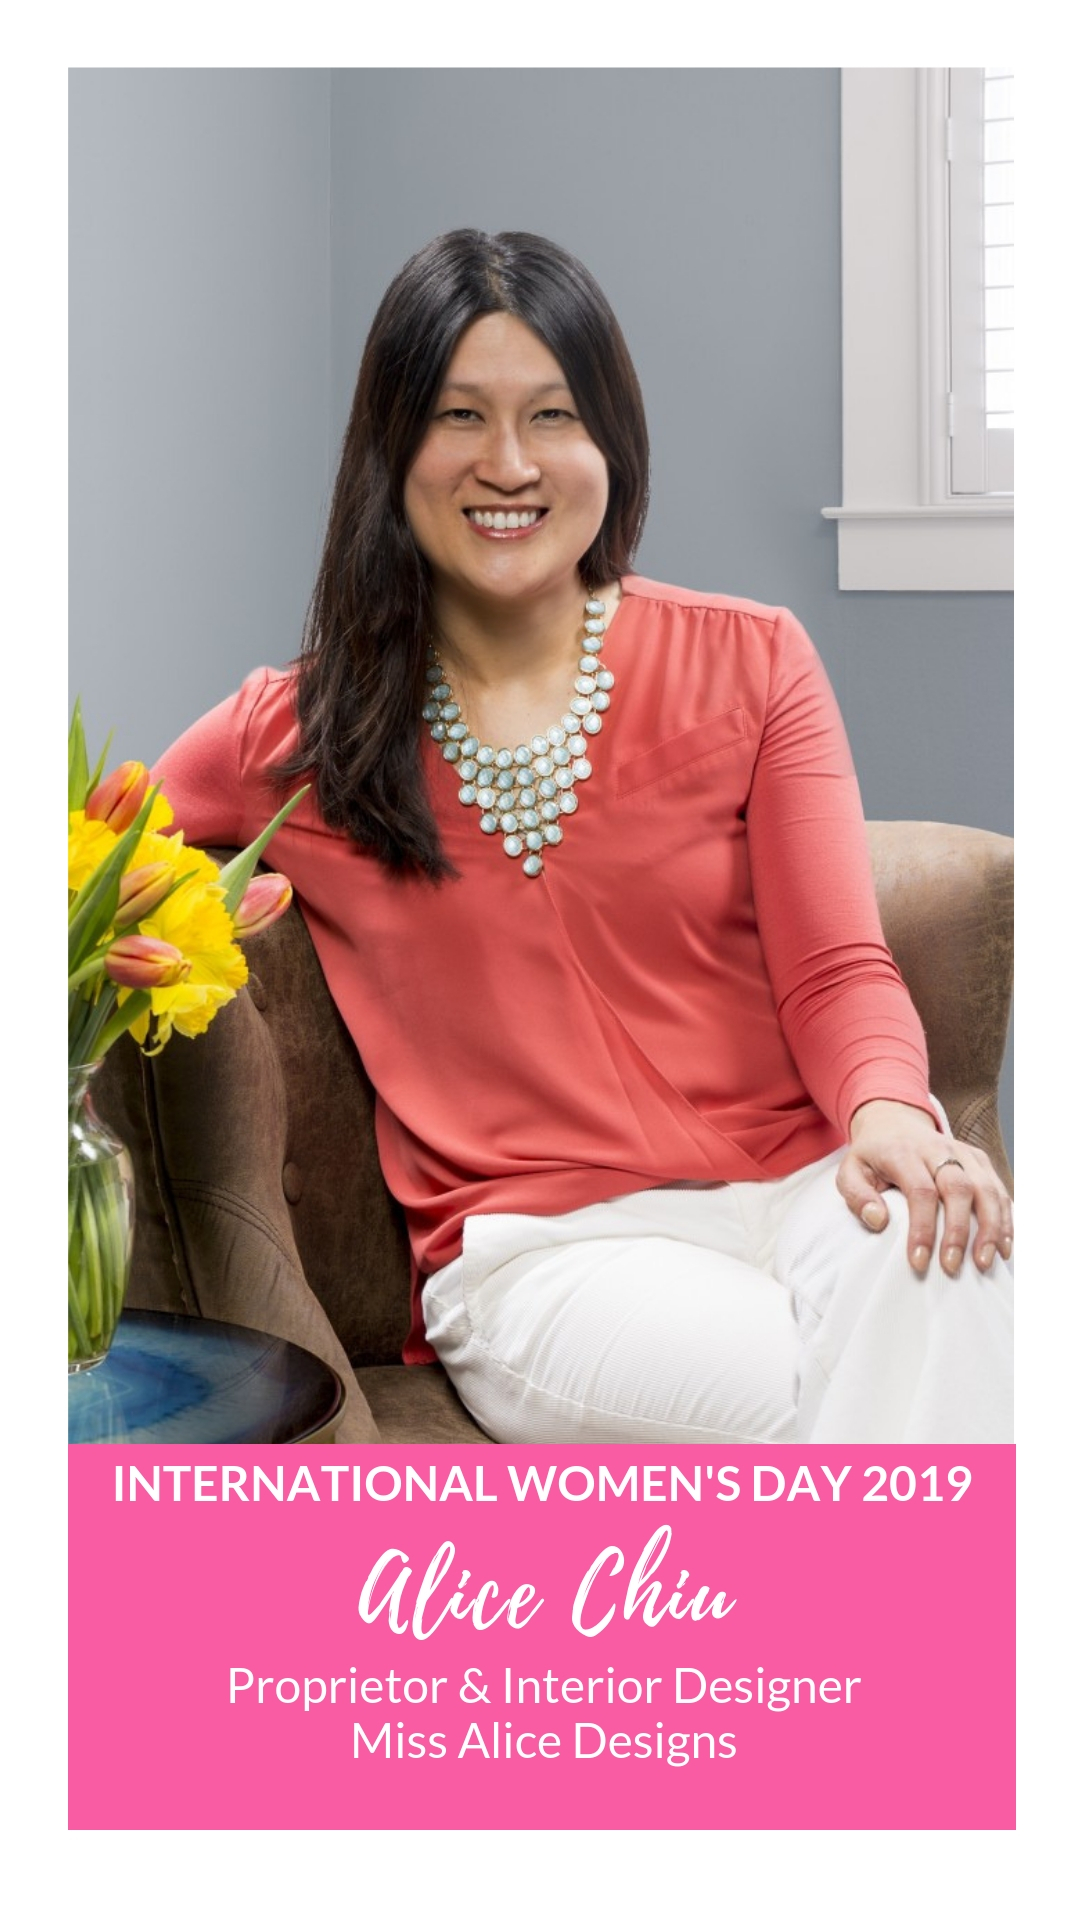 International Women's Day - Alice Chiu